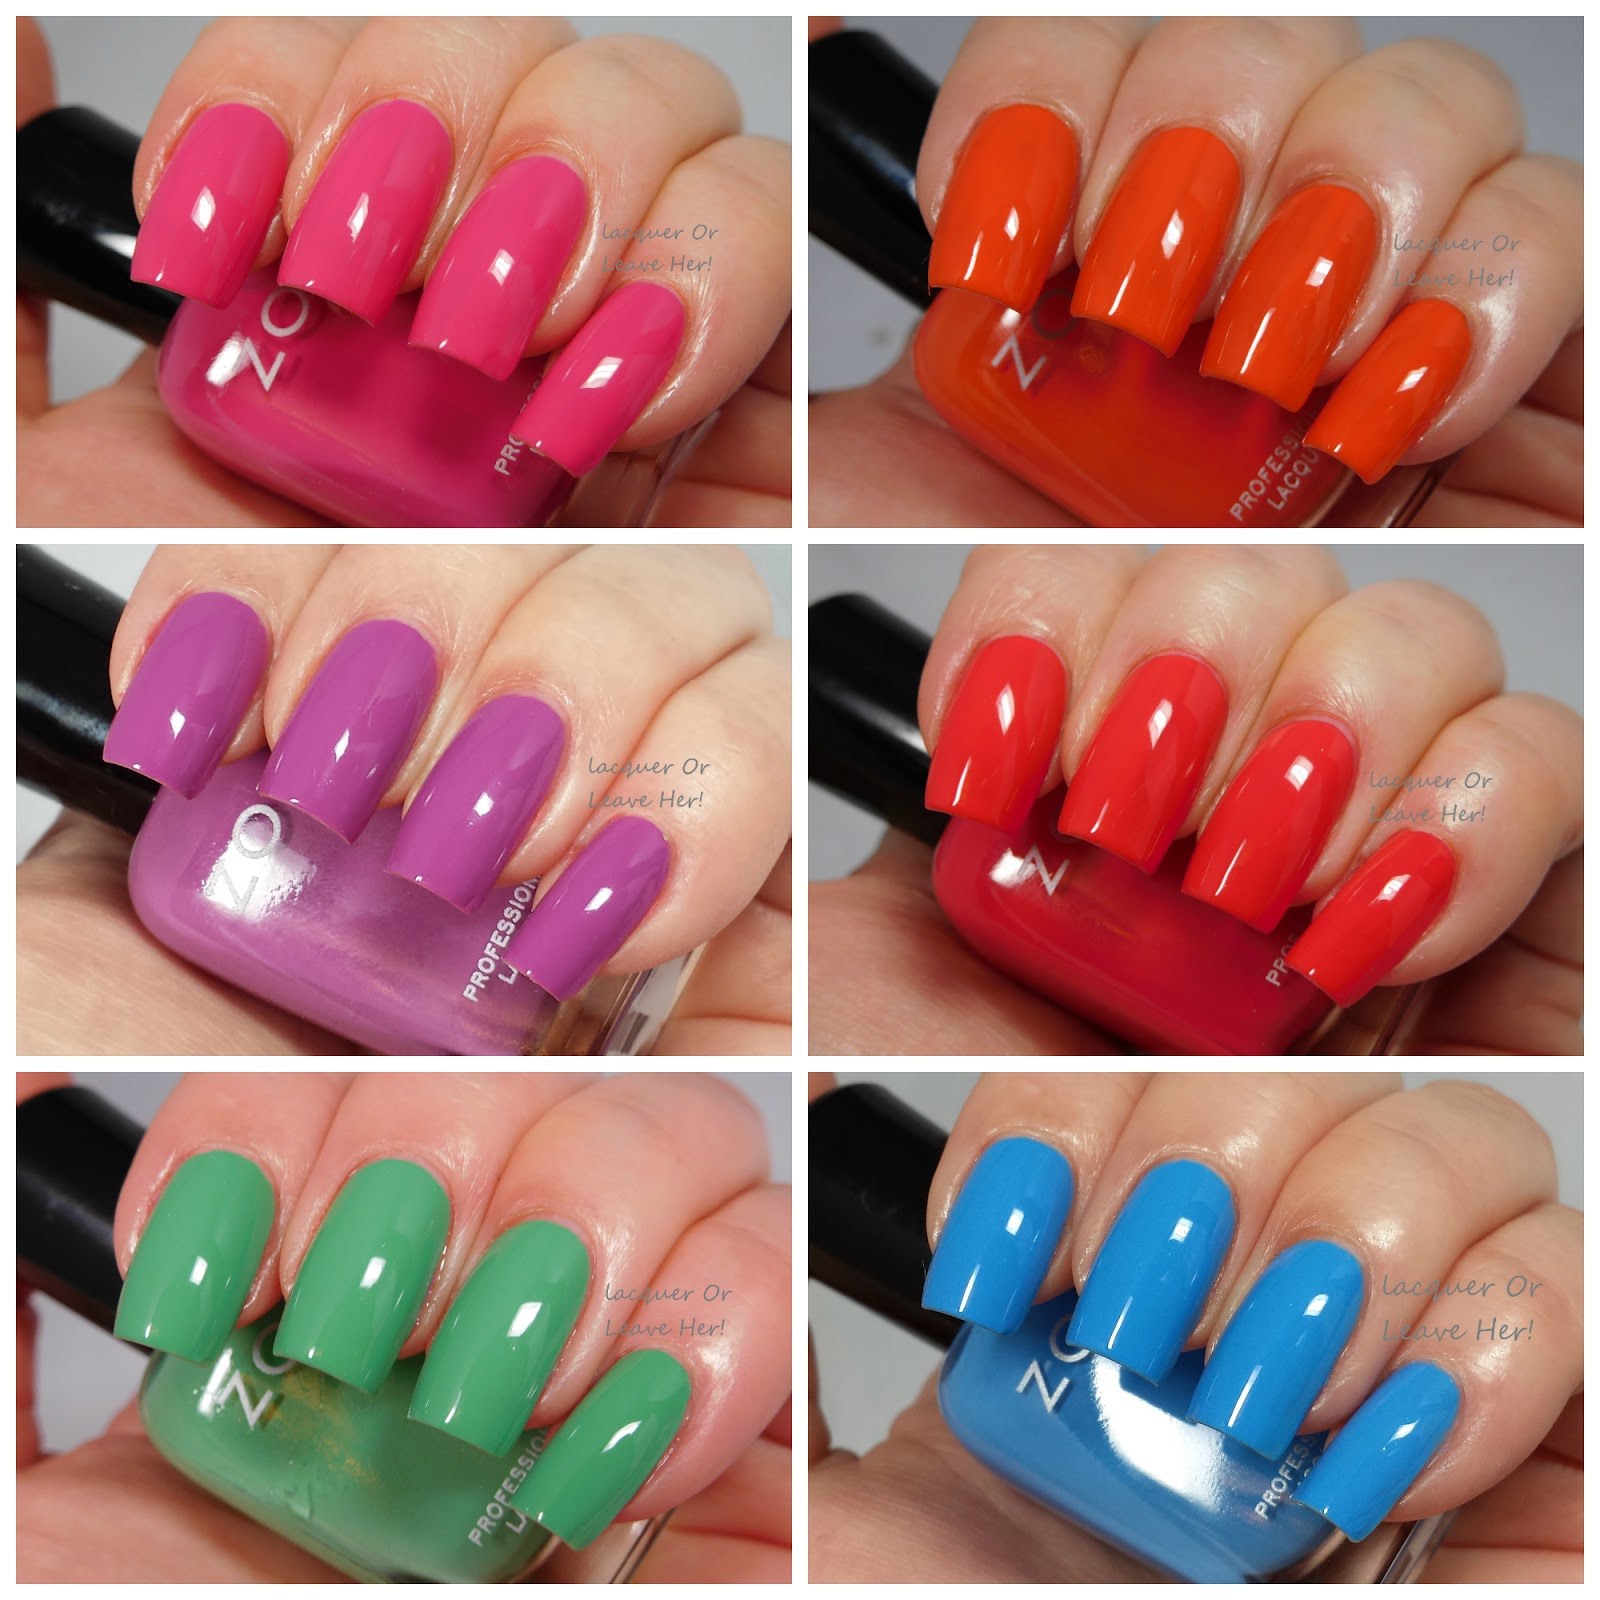 Lacquer or Leave Her!: Review: Zoya Sunsets Summer 2016 collection!